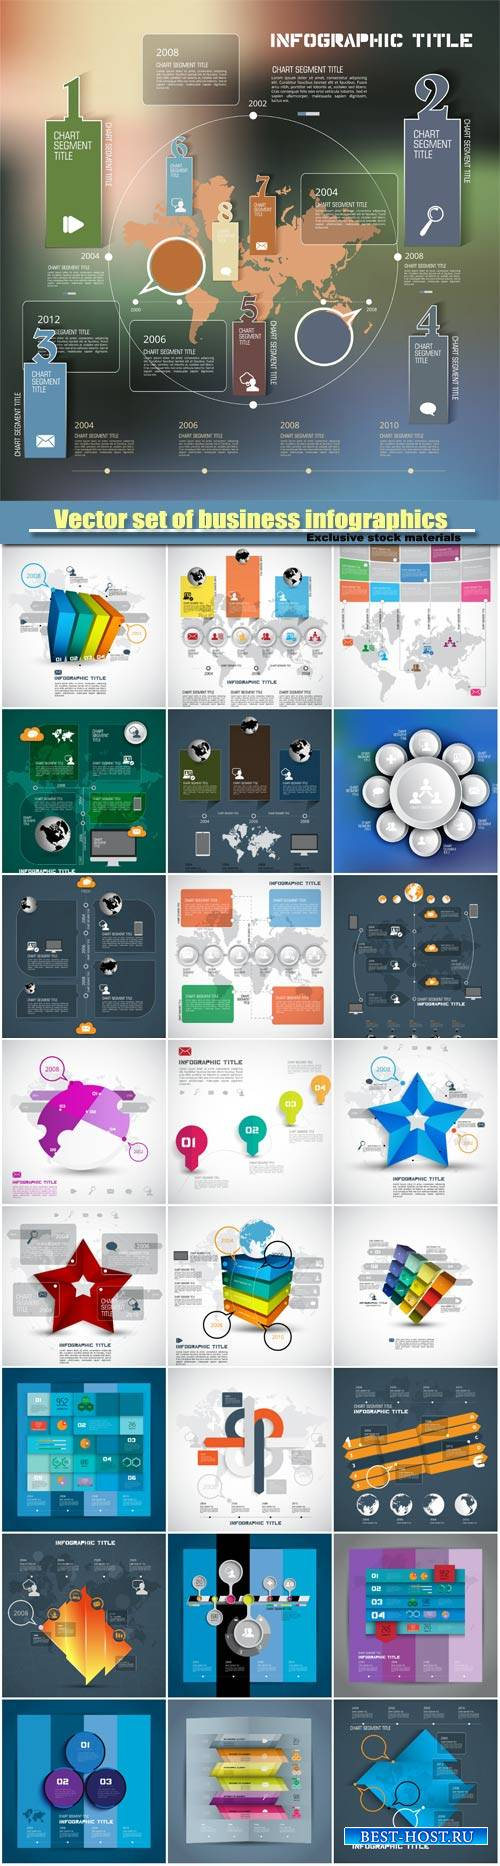 Vector set of business infographics